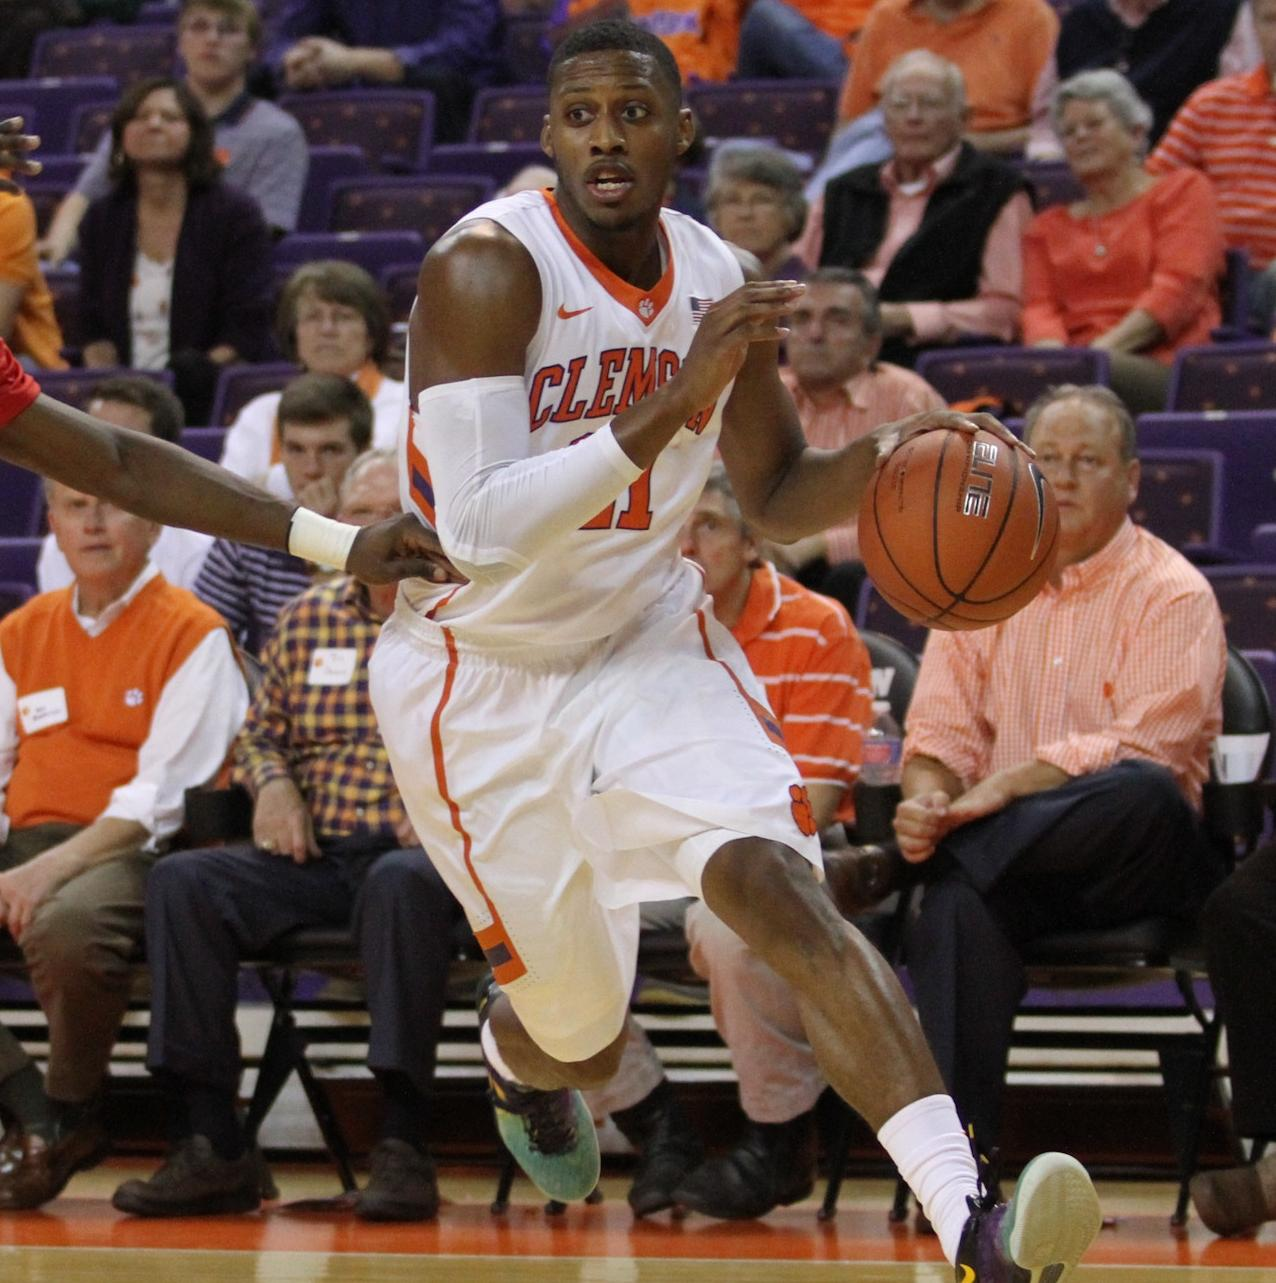 Tigers Fall to Rutgers, 69-64